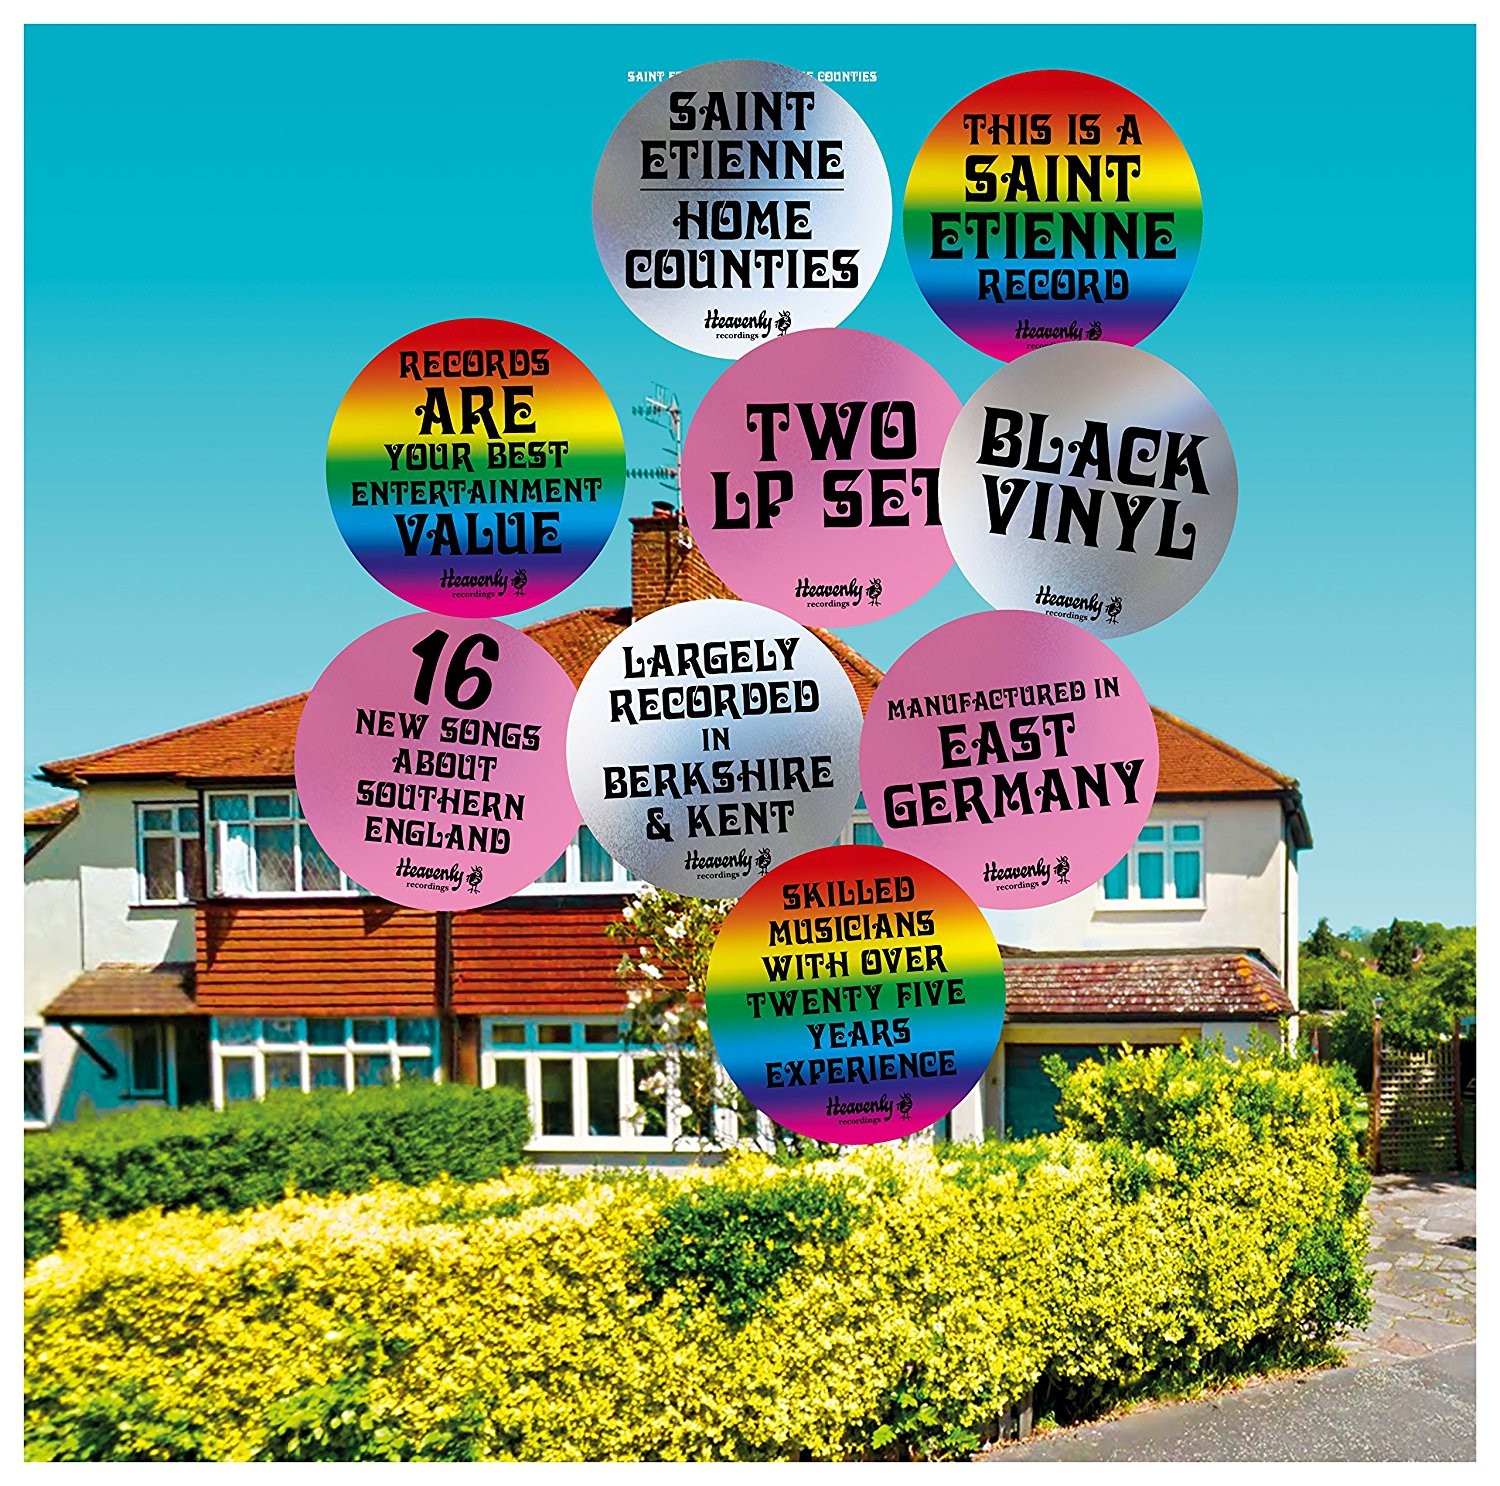 Saint Etienne | Home Counties